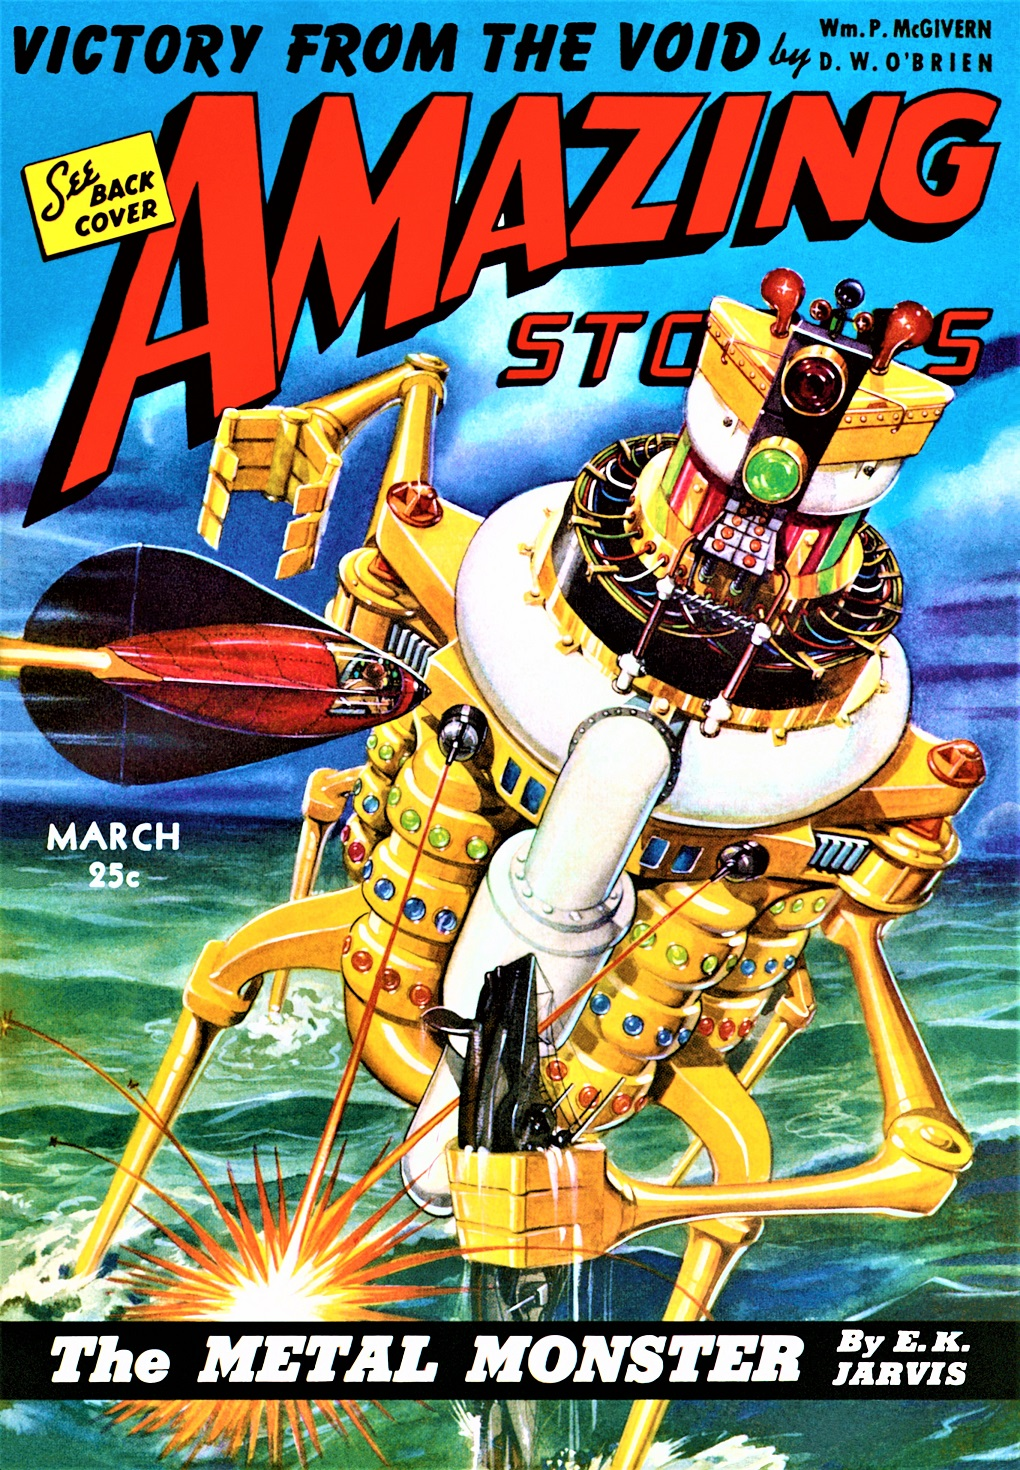 AMAZING STORIES - March, 1943